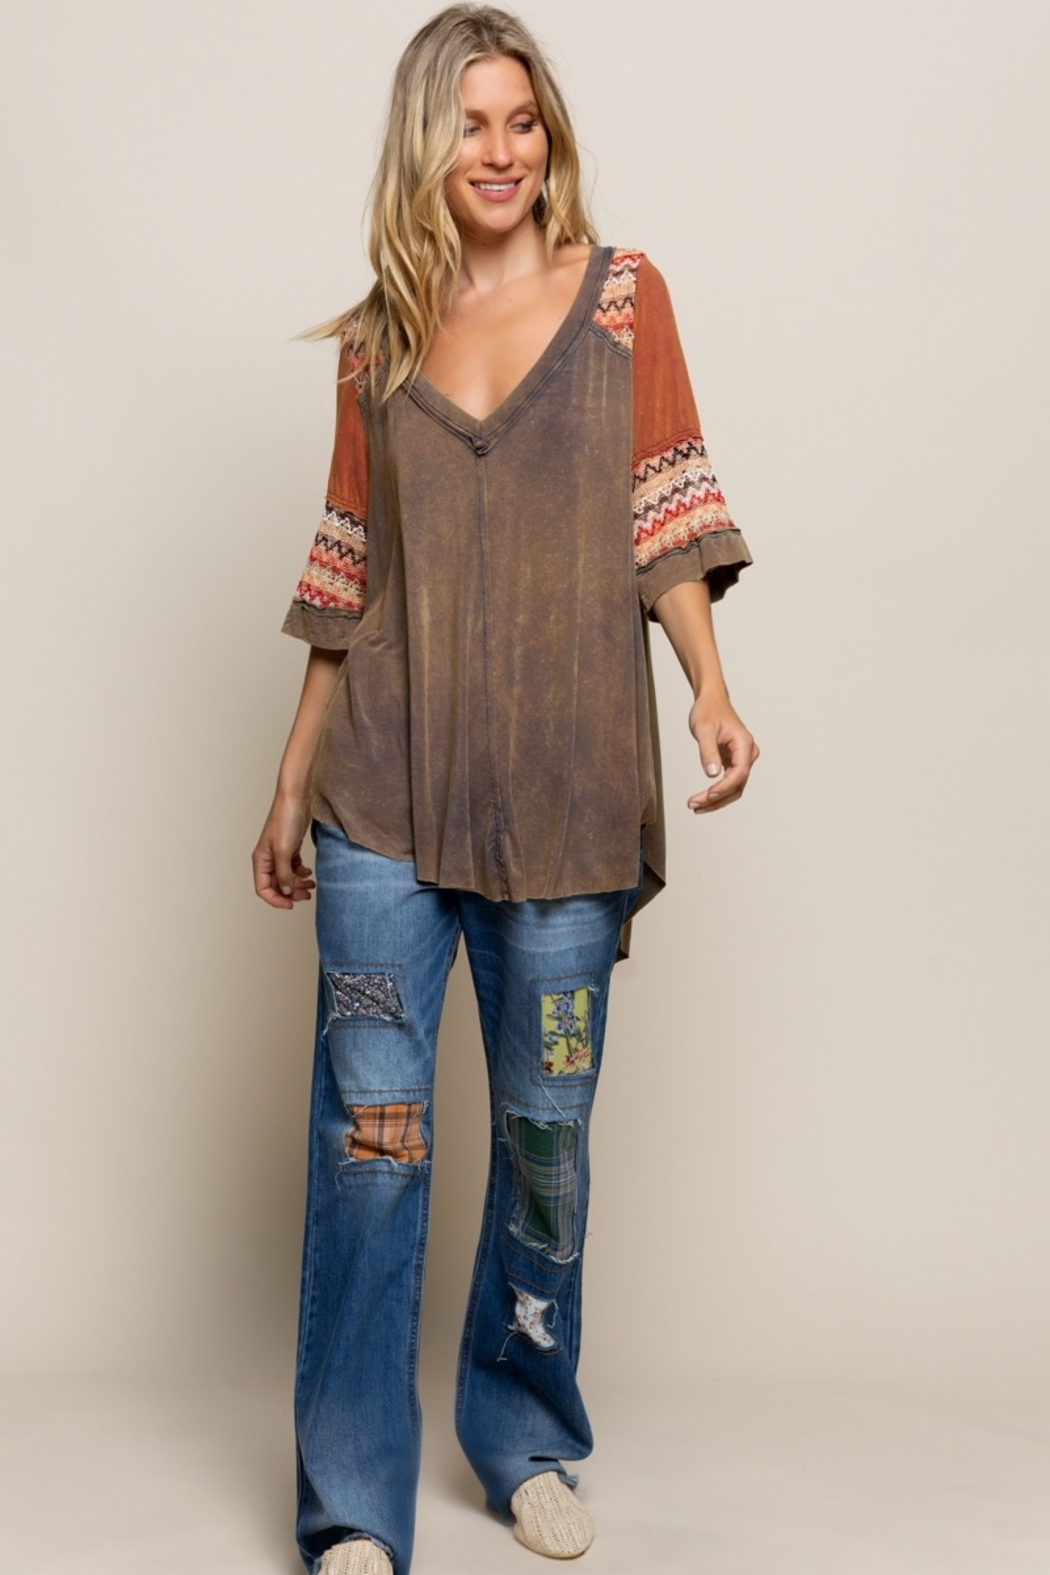 Pol Clothing BOHO Olive Brown Knit Top - Main Image